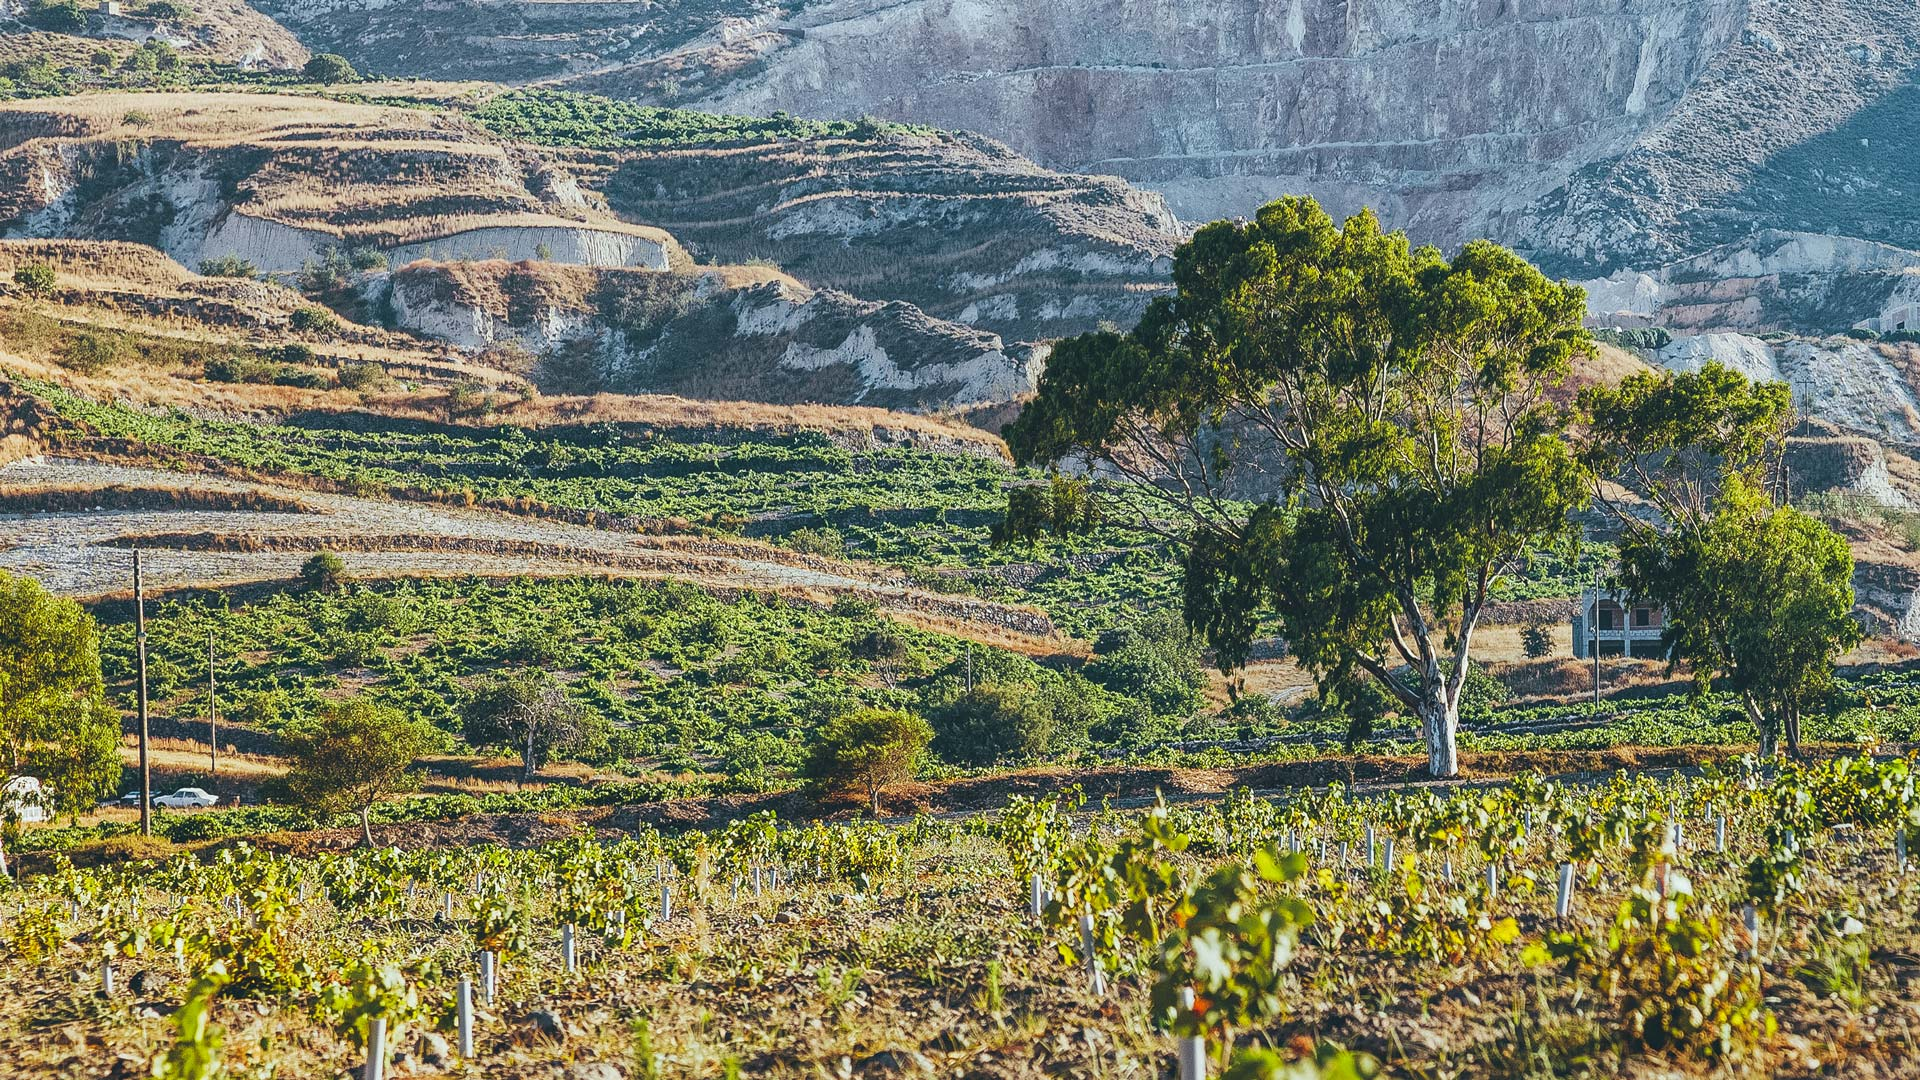 The unique terroir where Santorini vineyards grow